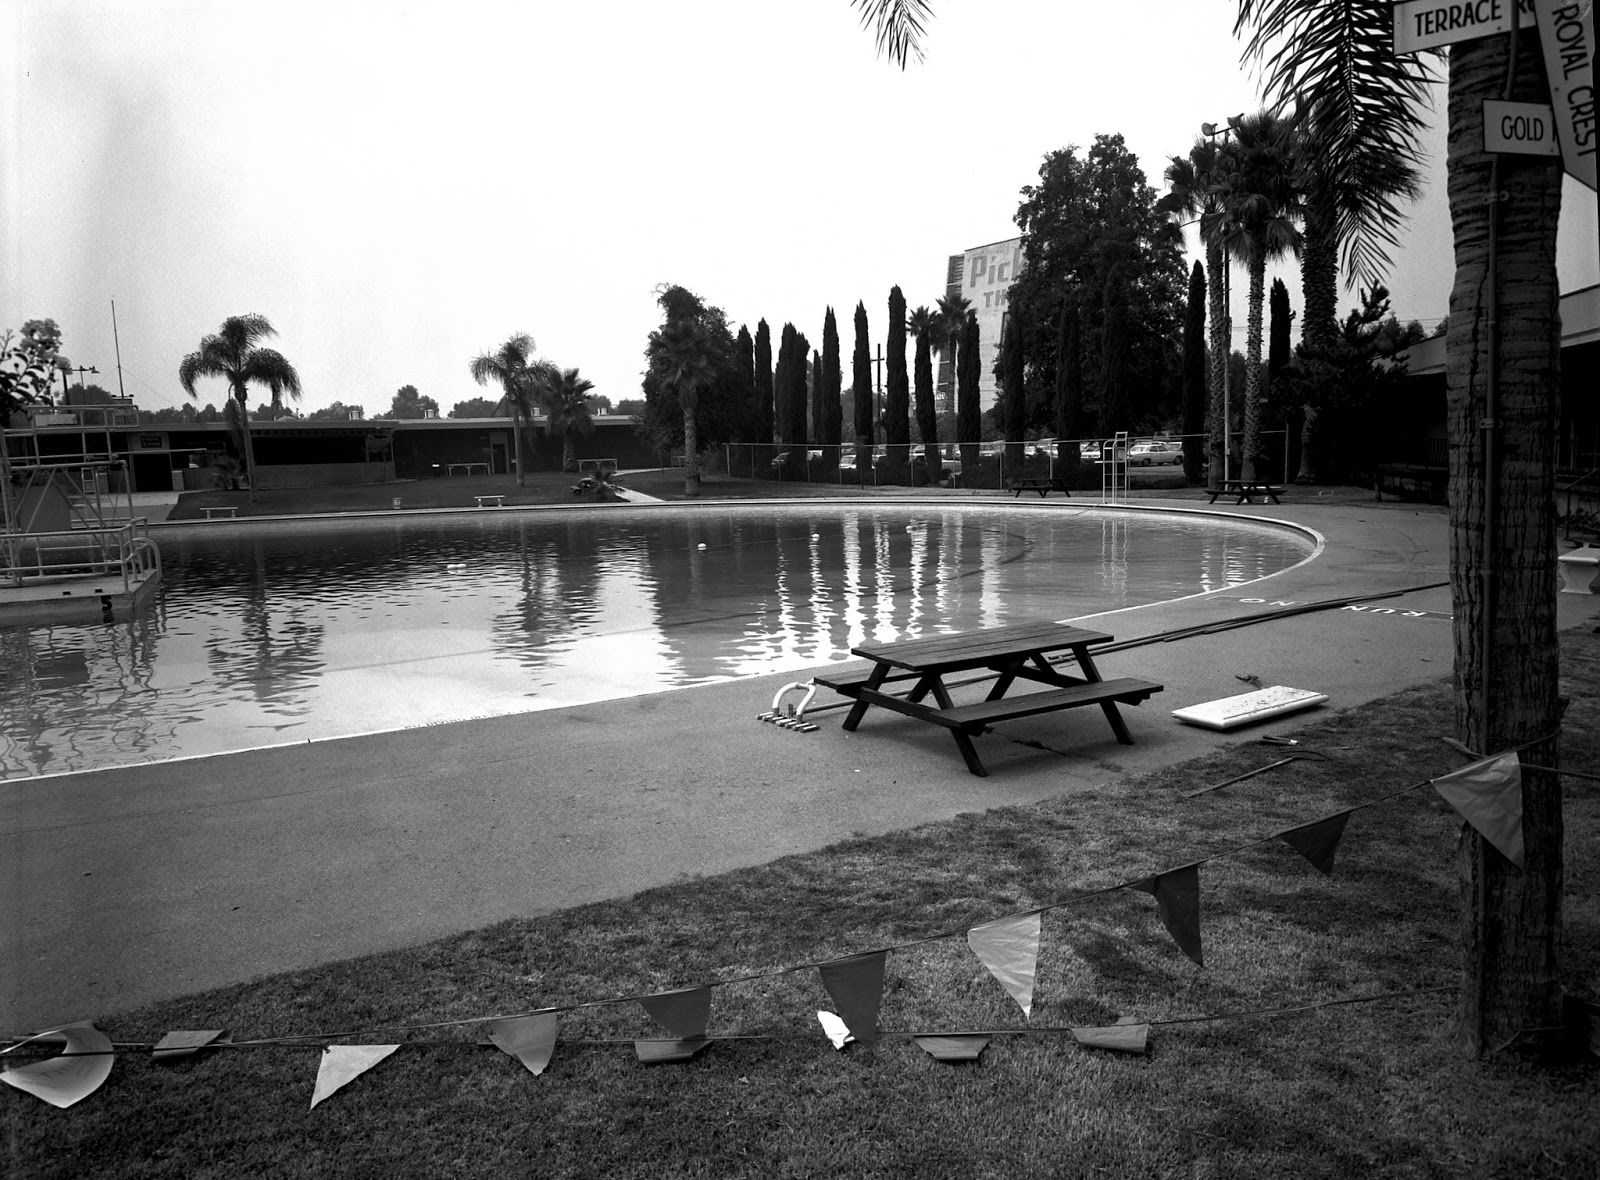 Just Down The Street From My Place Stands A Recreation Center With An Ominous Past Pickwick Bowling Alley And Gardens The Re Burbank Toluca Lake Los Angeles